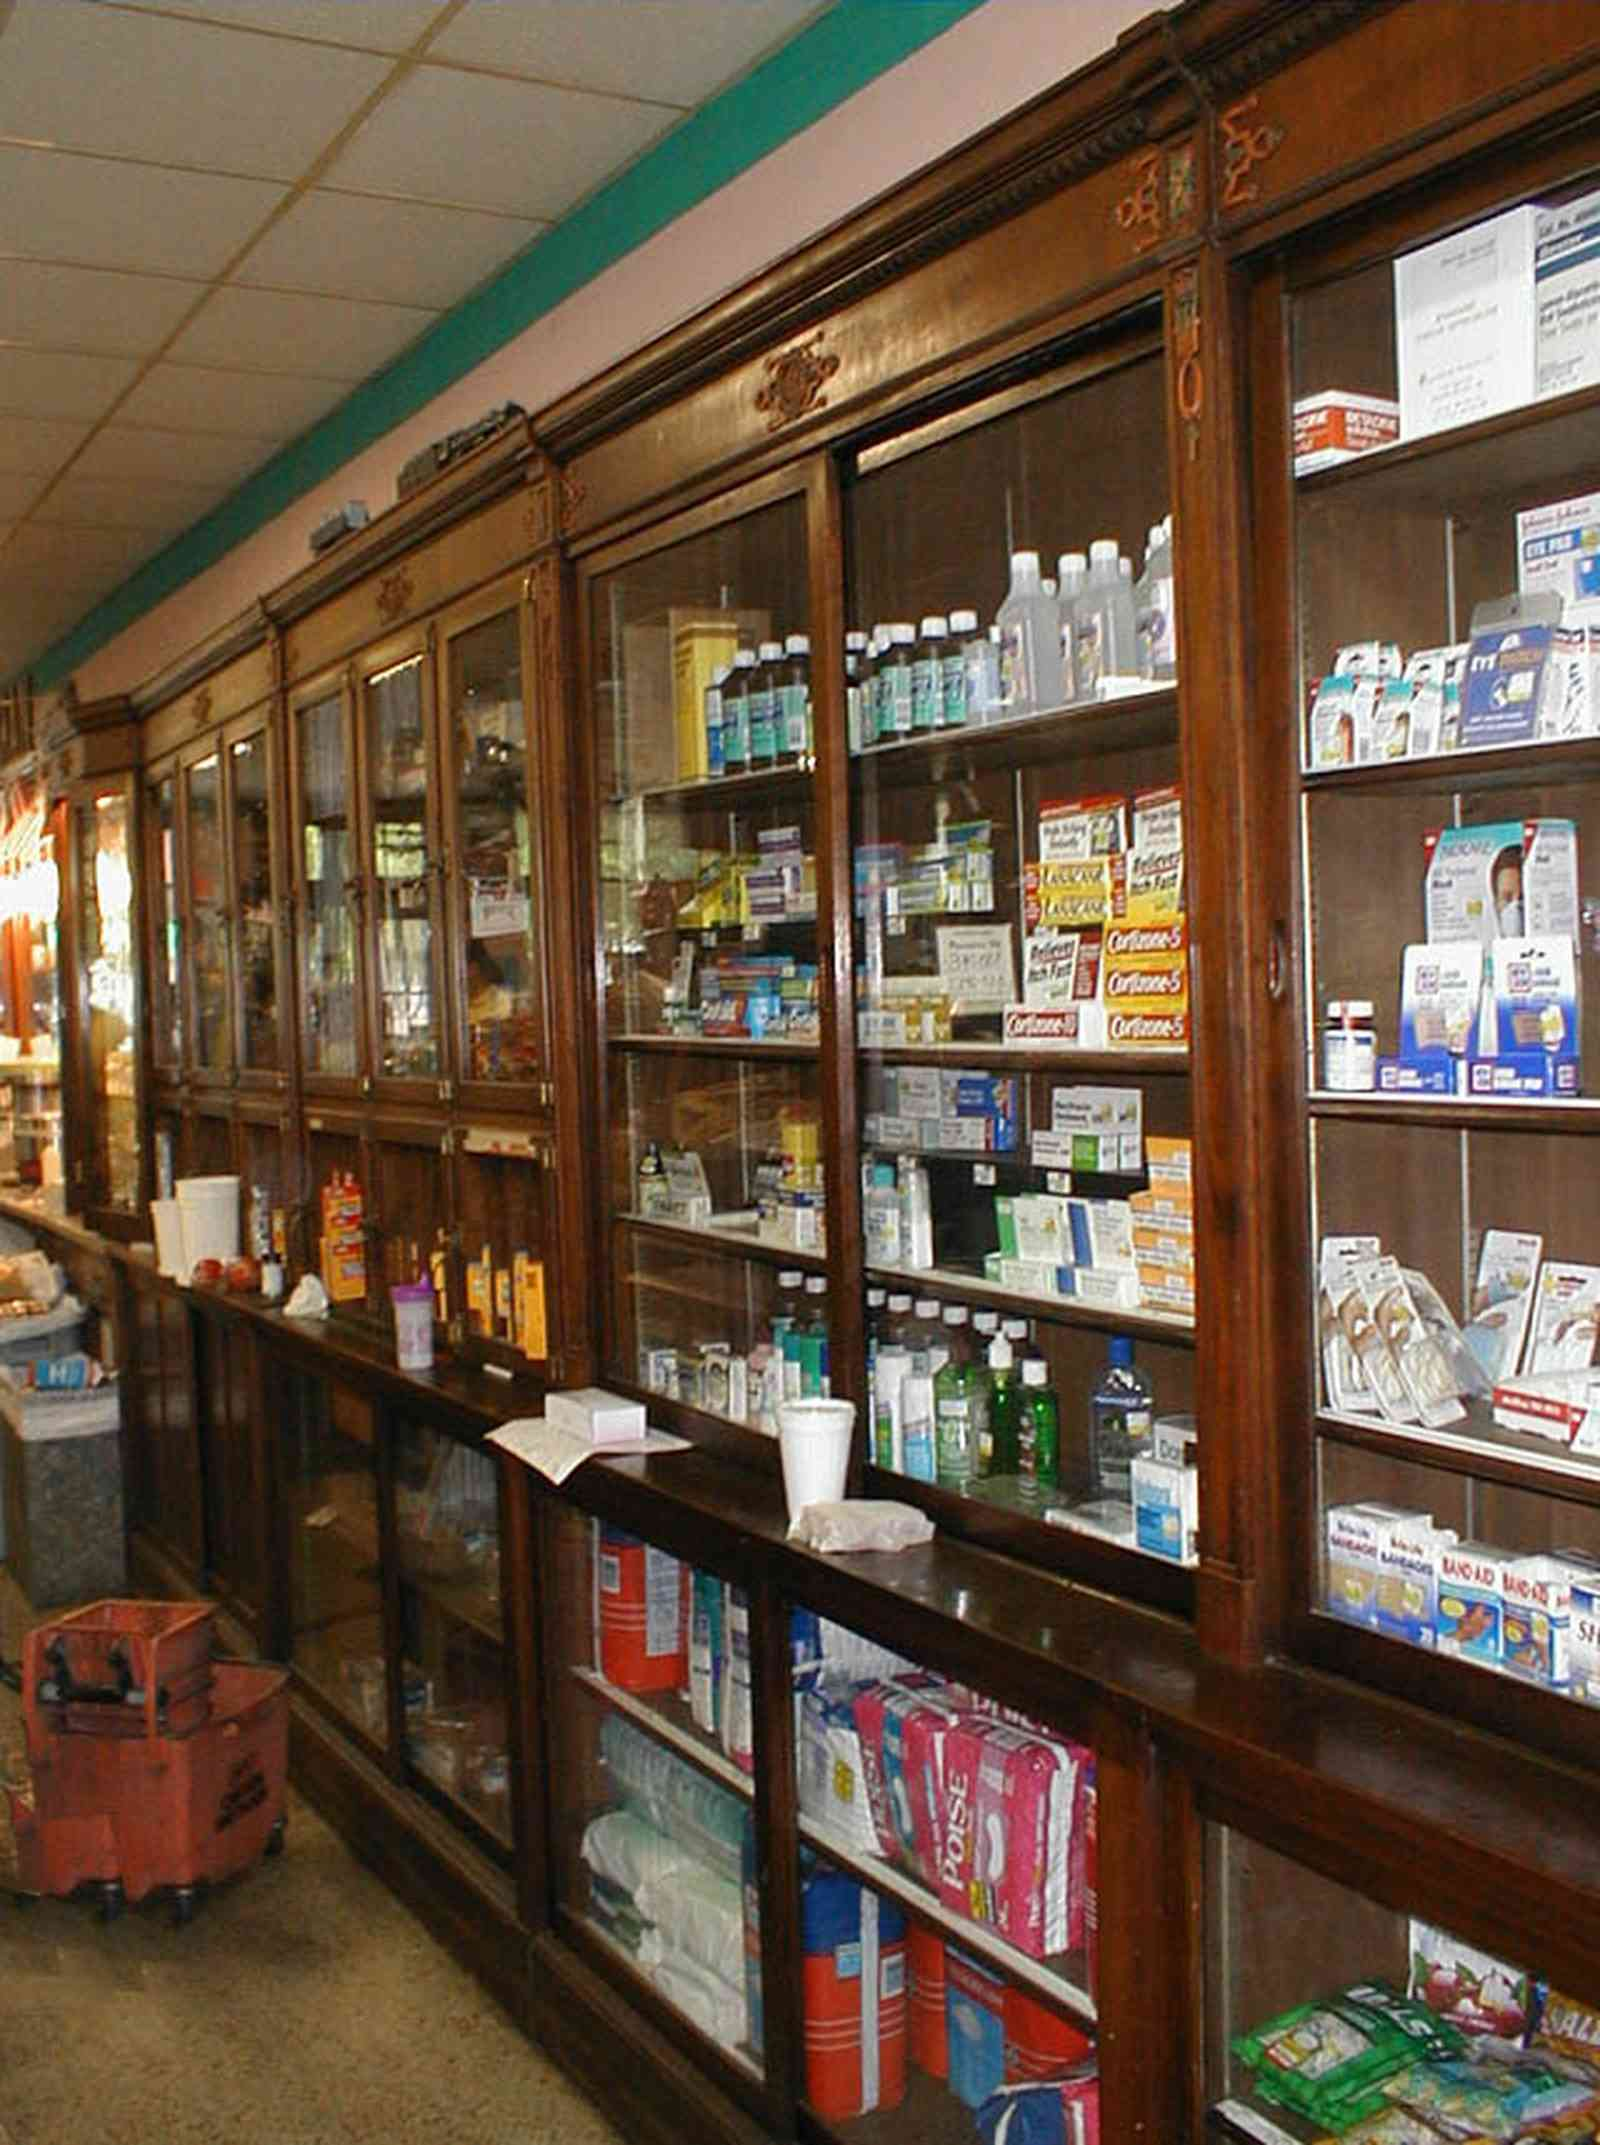 Foley:-Staceys-Drugstore_12.jpg:  drugstore, soda fountain, banana split, glass display cases, soda shop, awning, store front, brick building, art deco architecture, counter, cracker barrel, malts, milkshake, prescription drugs, druggist, card racks